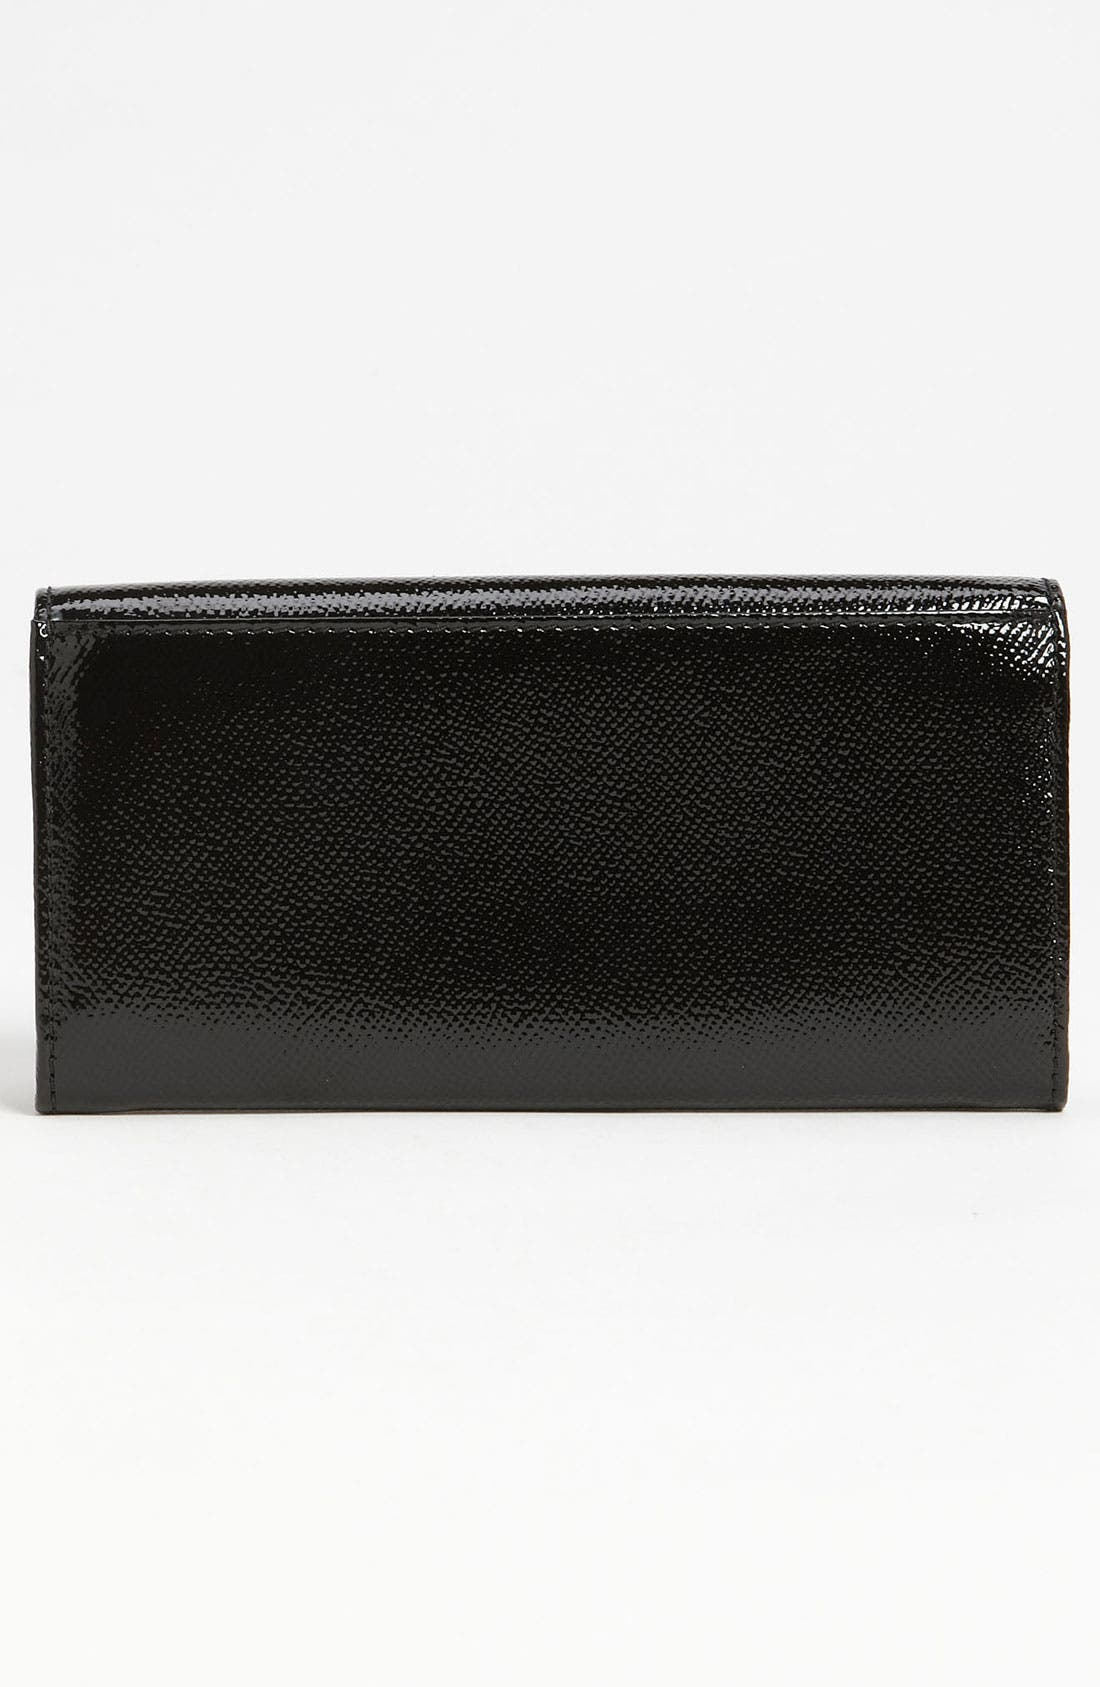 Patent Leather Wallet,                             Alternate thumbnail 3, color,                             001